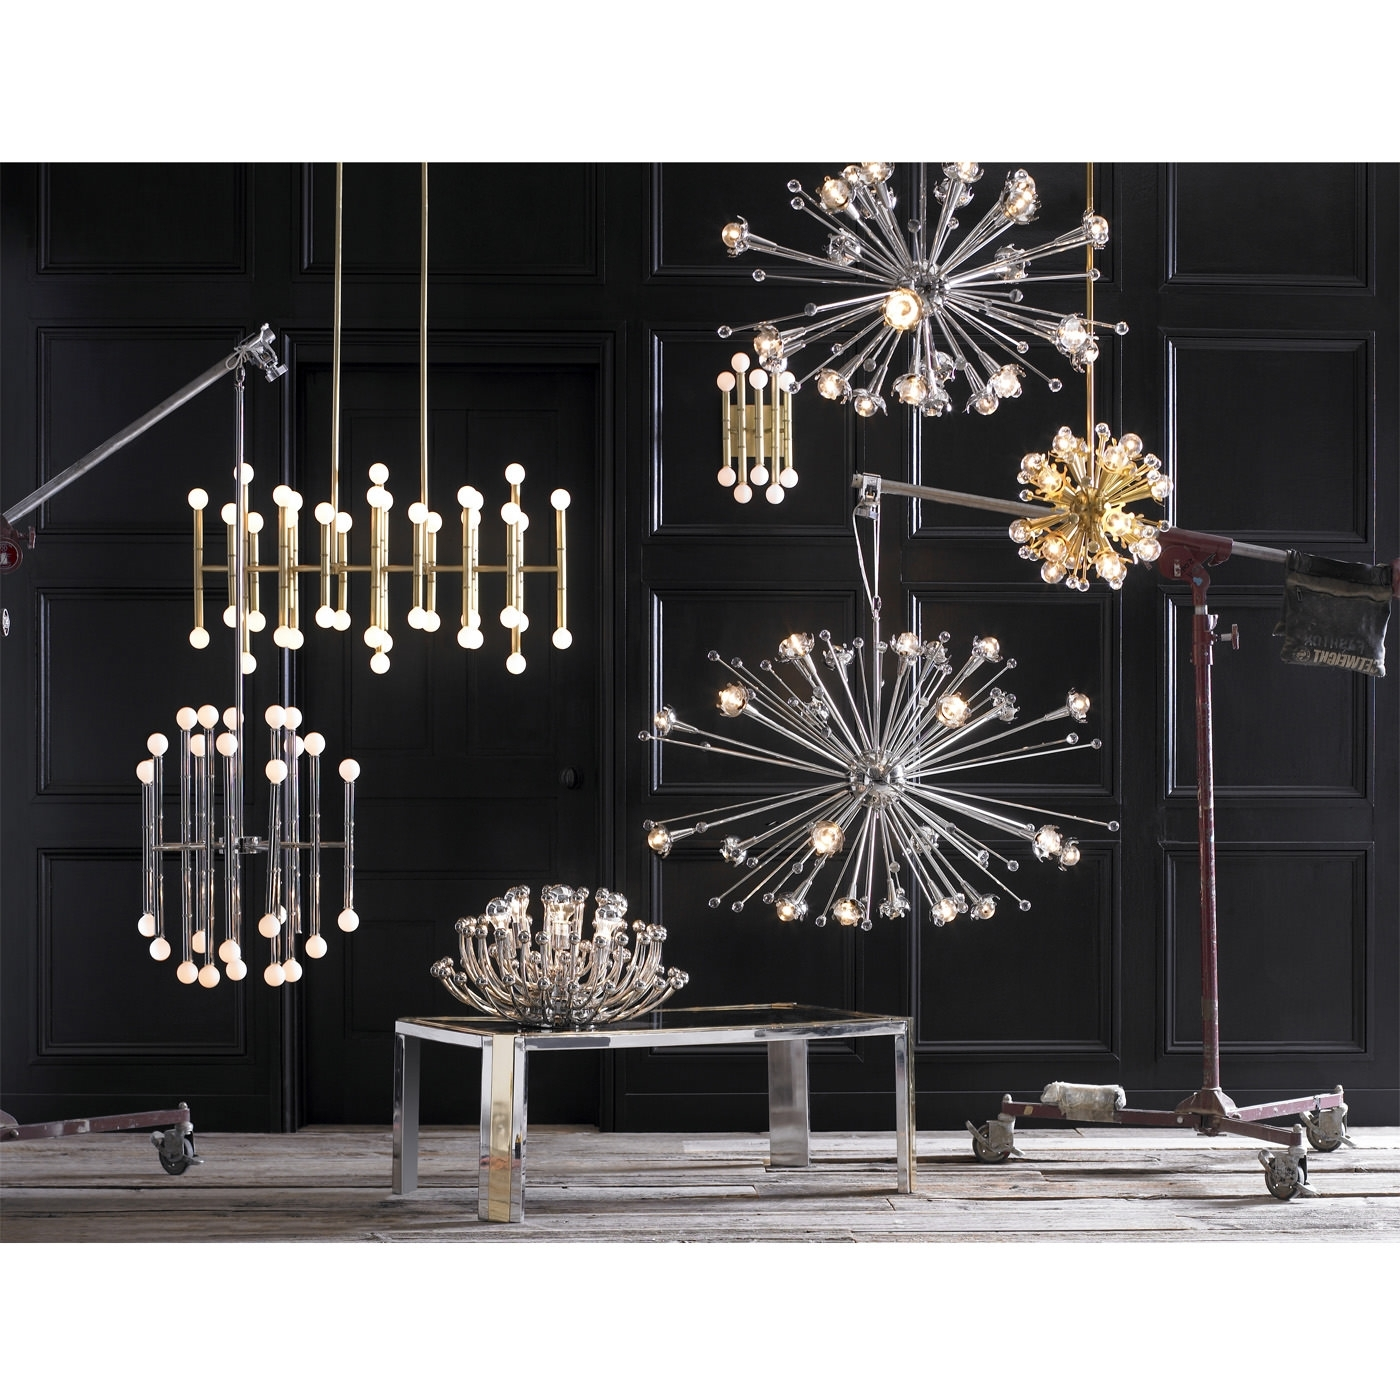 Jonathan Adler For Mini Sputnik Chandeliers (View 8 of 20)